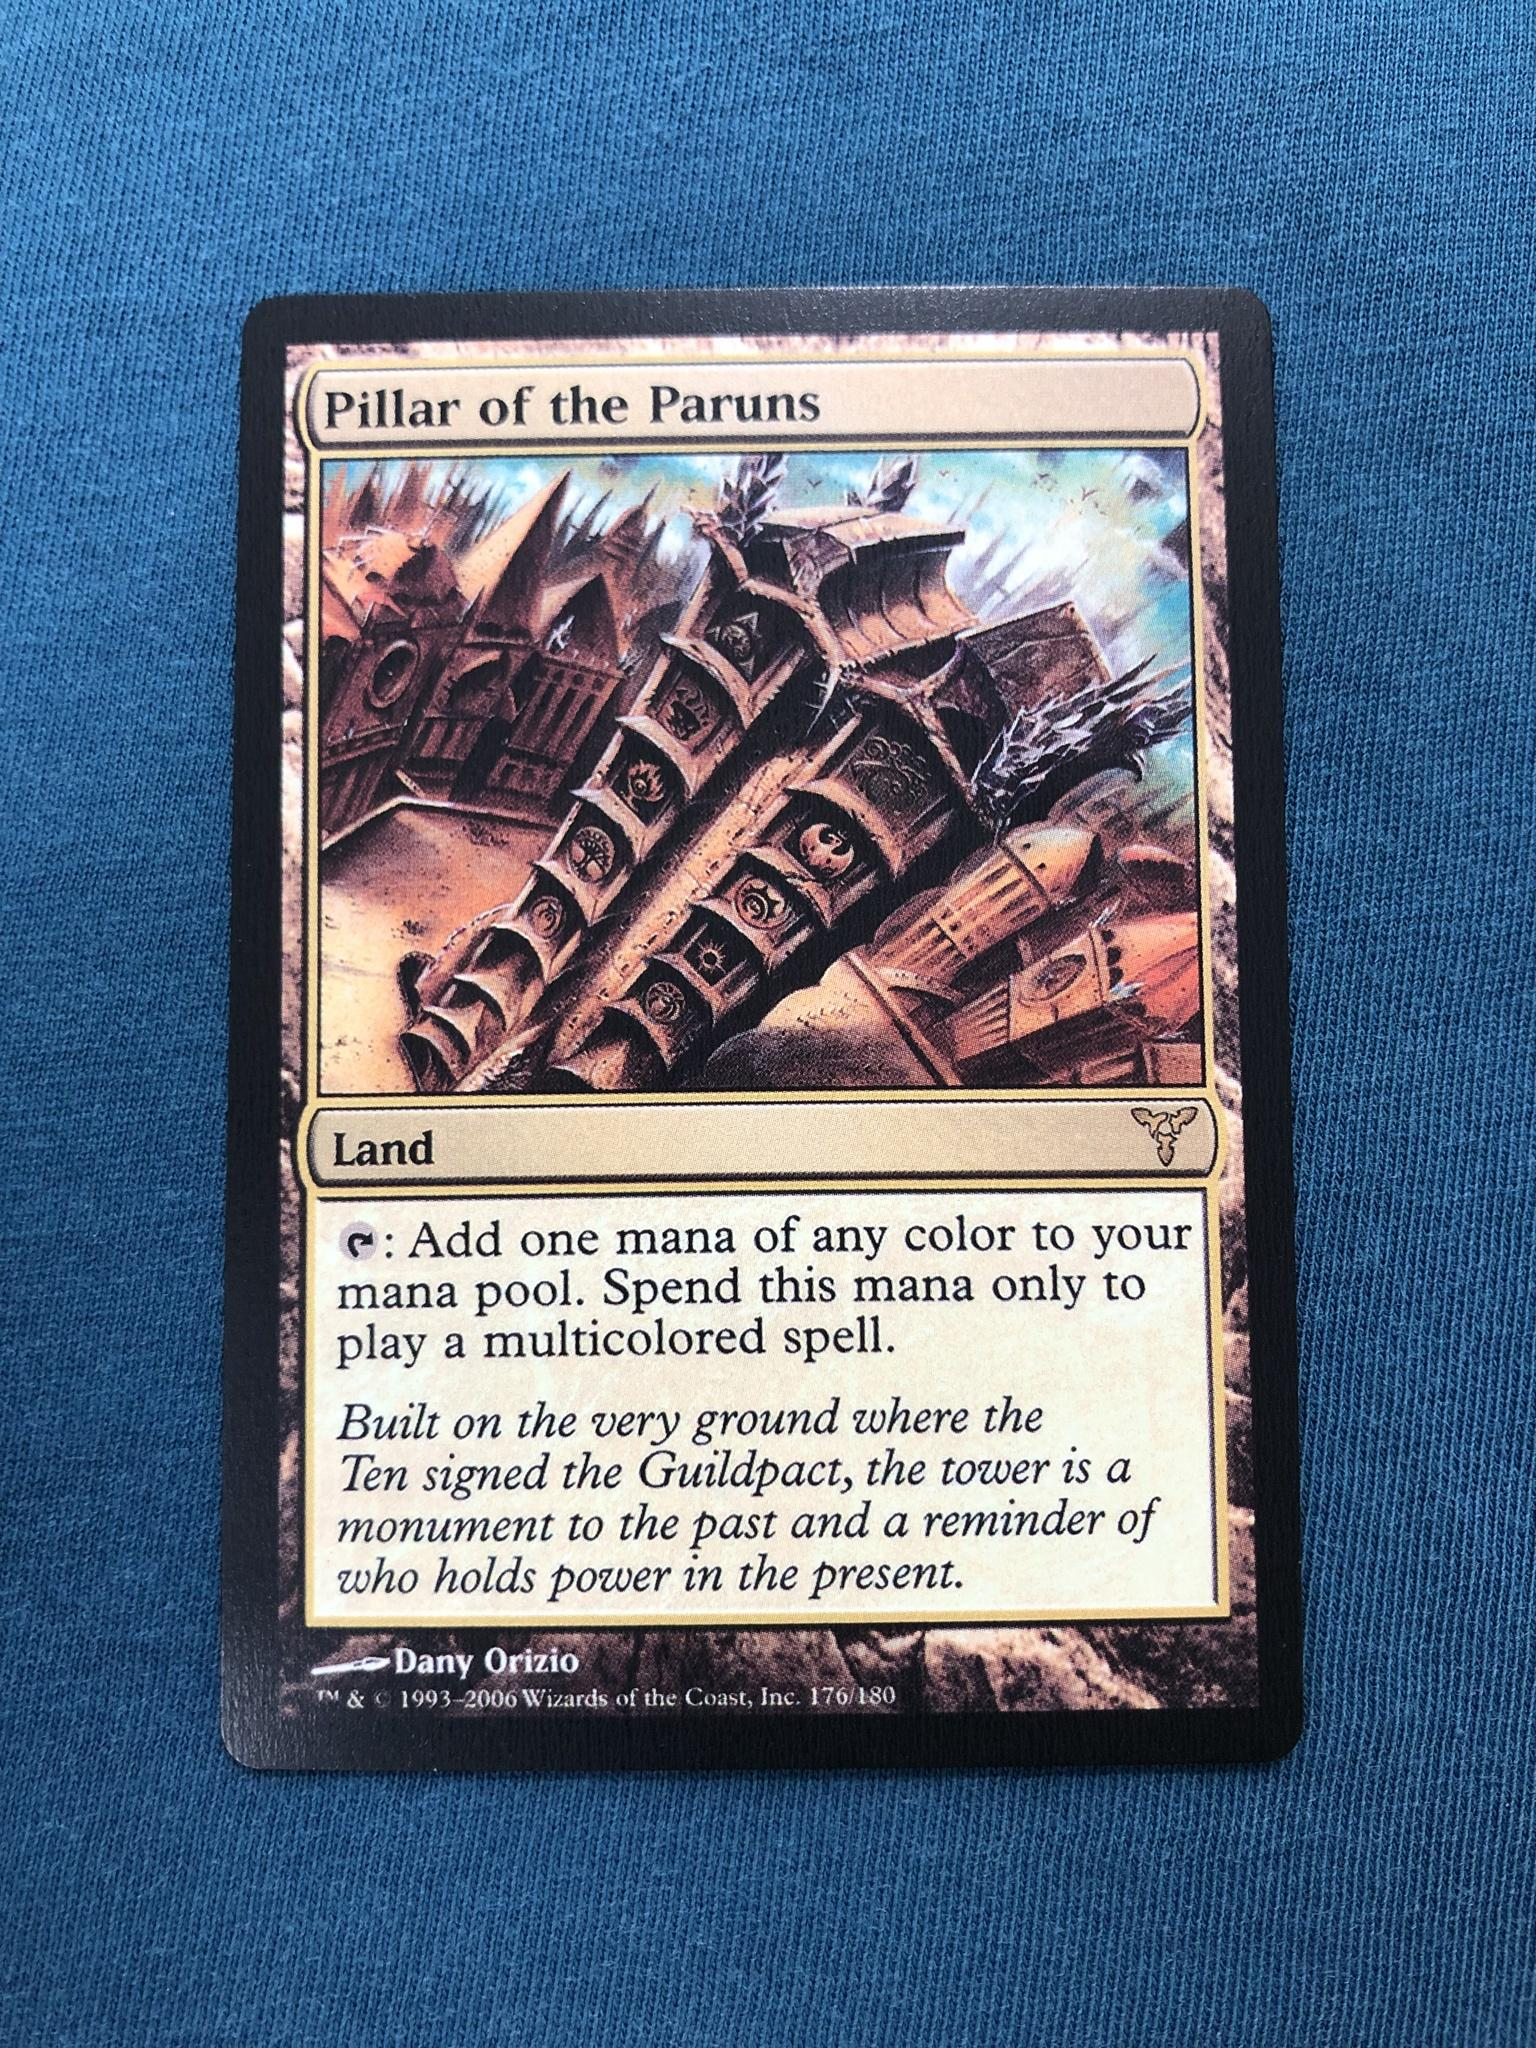 Pillar of the Paruns Dissension (DIS) proxy mtg proxies proxy magic the gathering proxies cards FNM GP playable quality